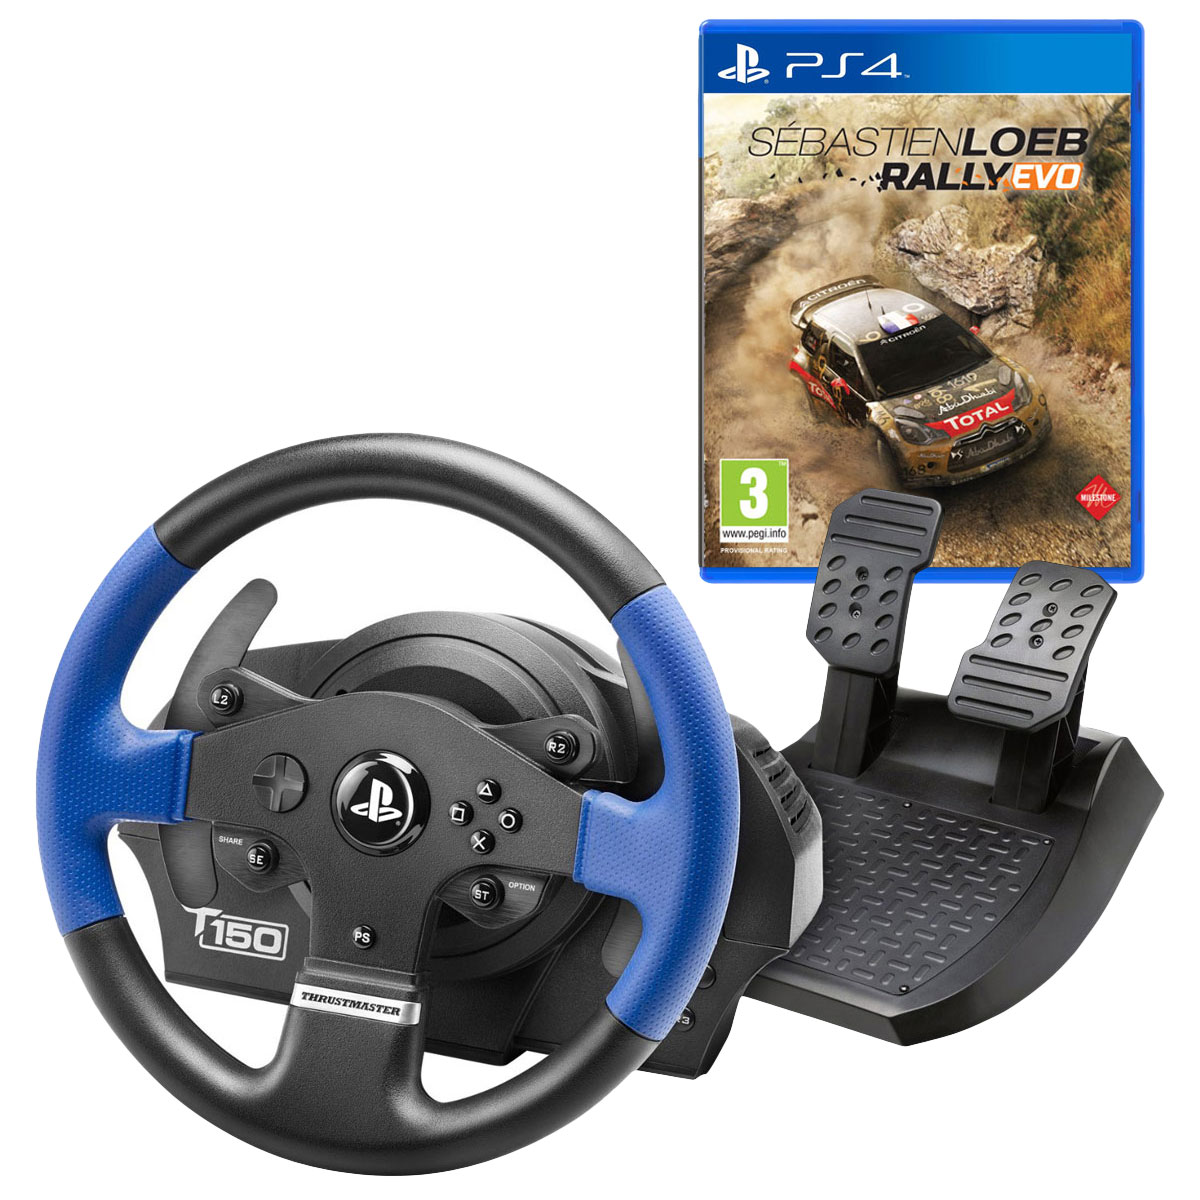 thrustmaster t150 force feedback s bastien loeb ps4 offert accessoires ps4 thrustmaster. Black Bedroom Furniture Sets. Home Design Ideas